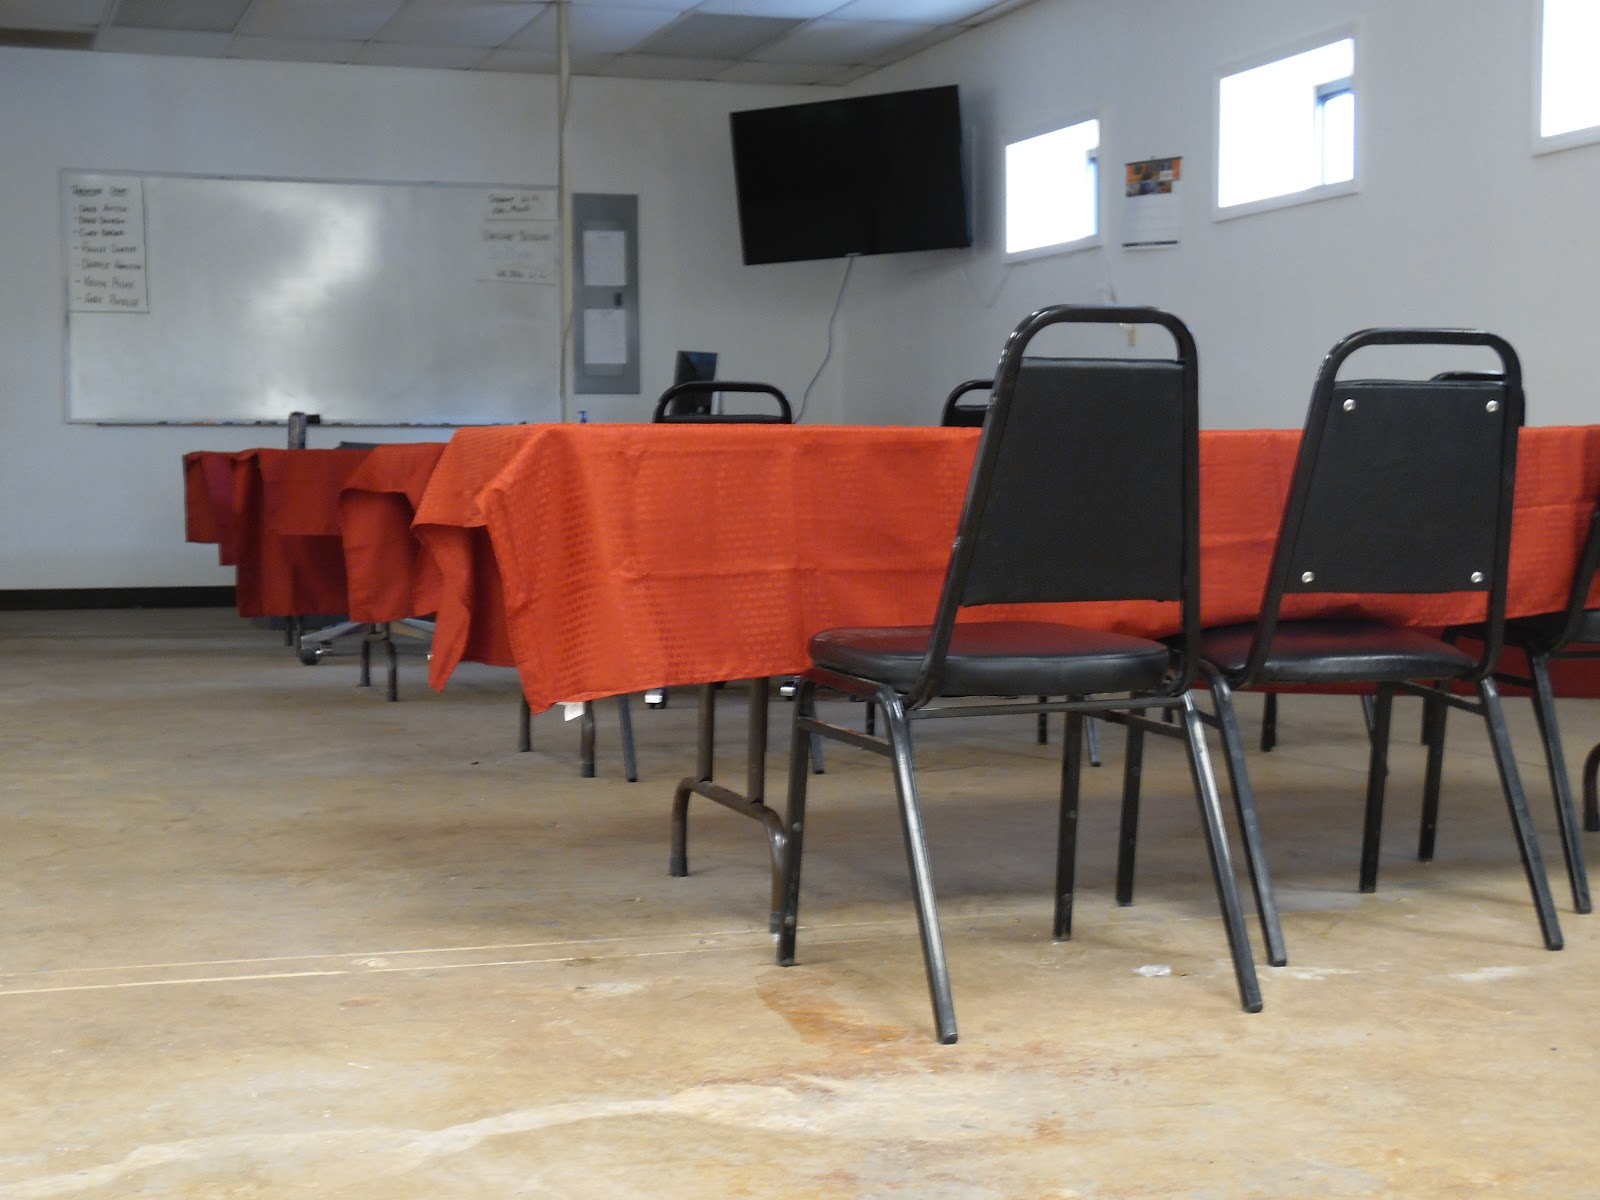 Classroom at CDL University's truck driving school in Oklahoma.